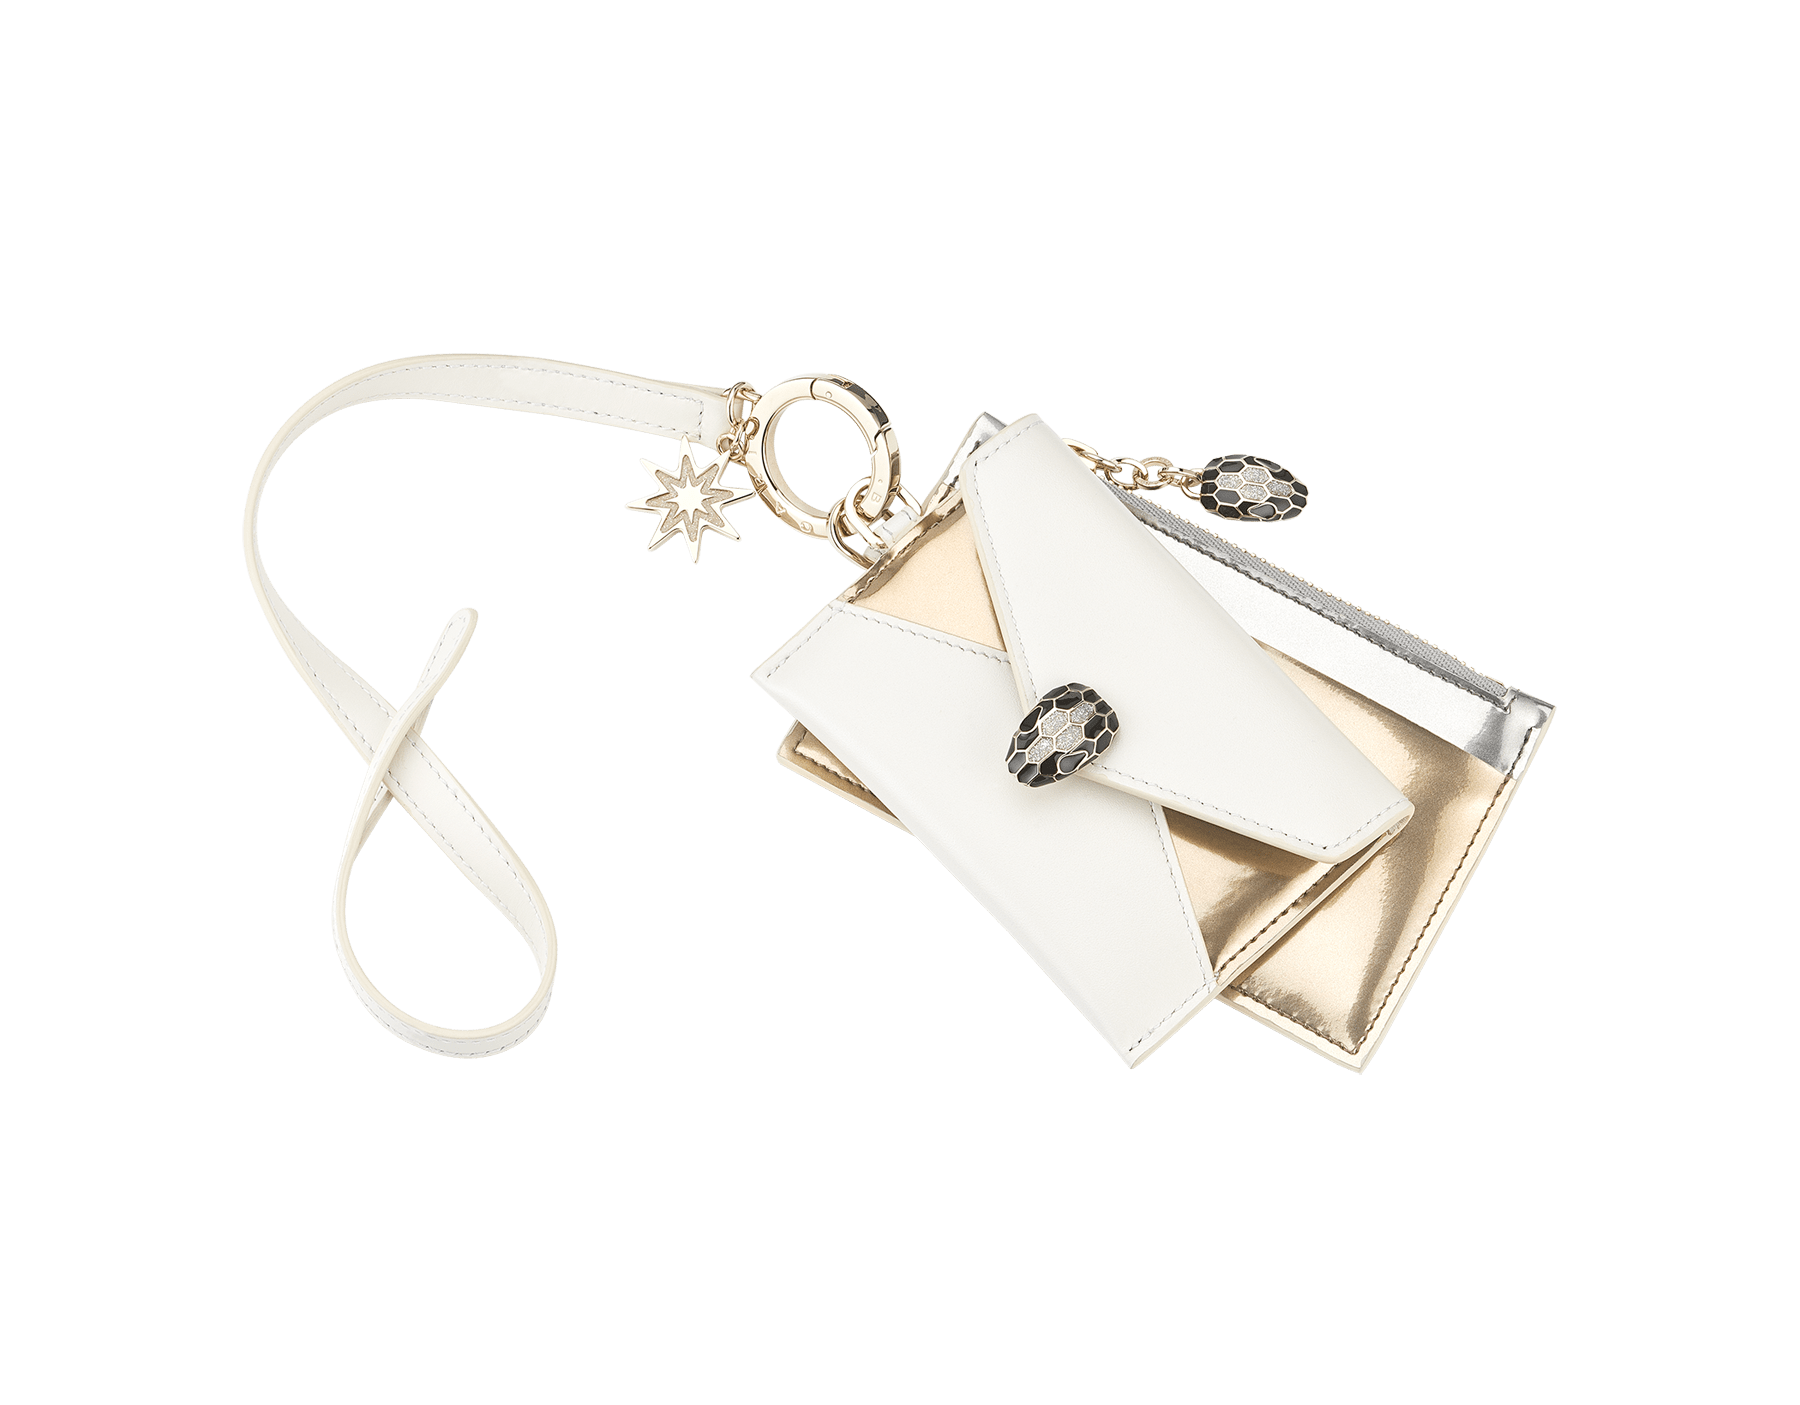 Serpenti Forever Holiday Season Duo key holder in white agate calf leather, antique bronze and silver brushed metallic calf leather. Brass light gold plated keyring, snakehead closure and zip puller embellished with glitter silver enamel and eight-pointed star charm in glitter light gold enamel. 289542 image 1